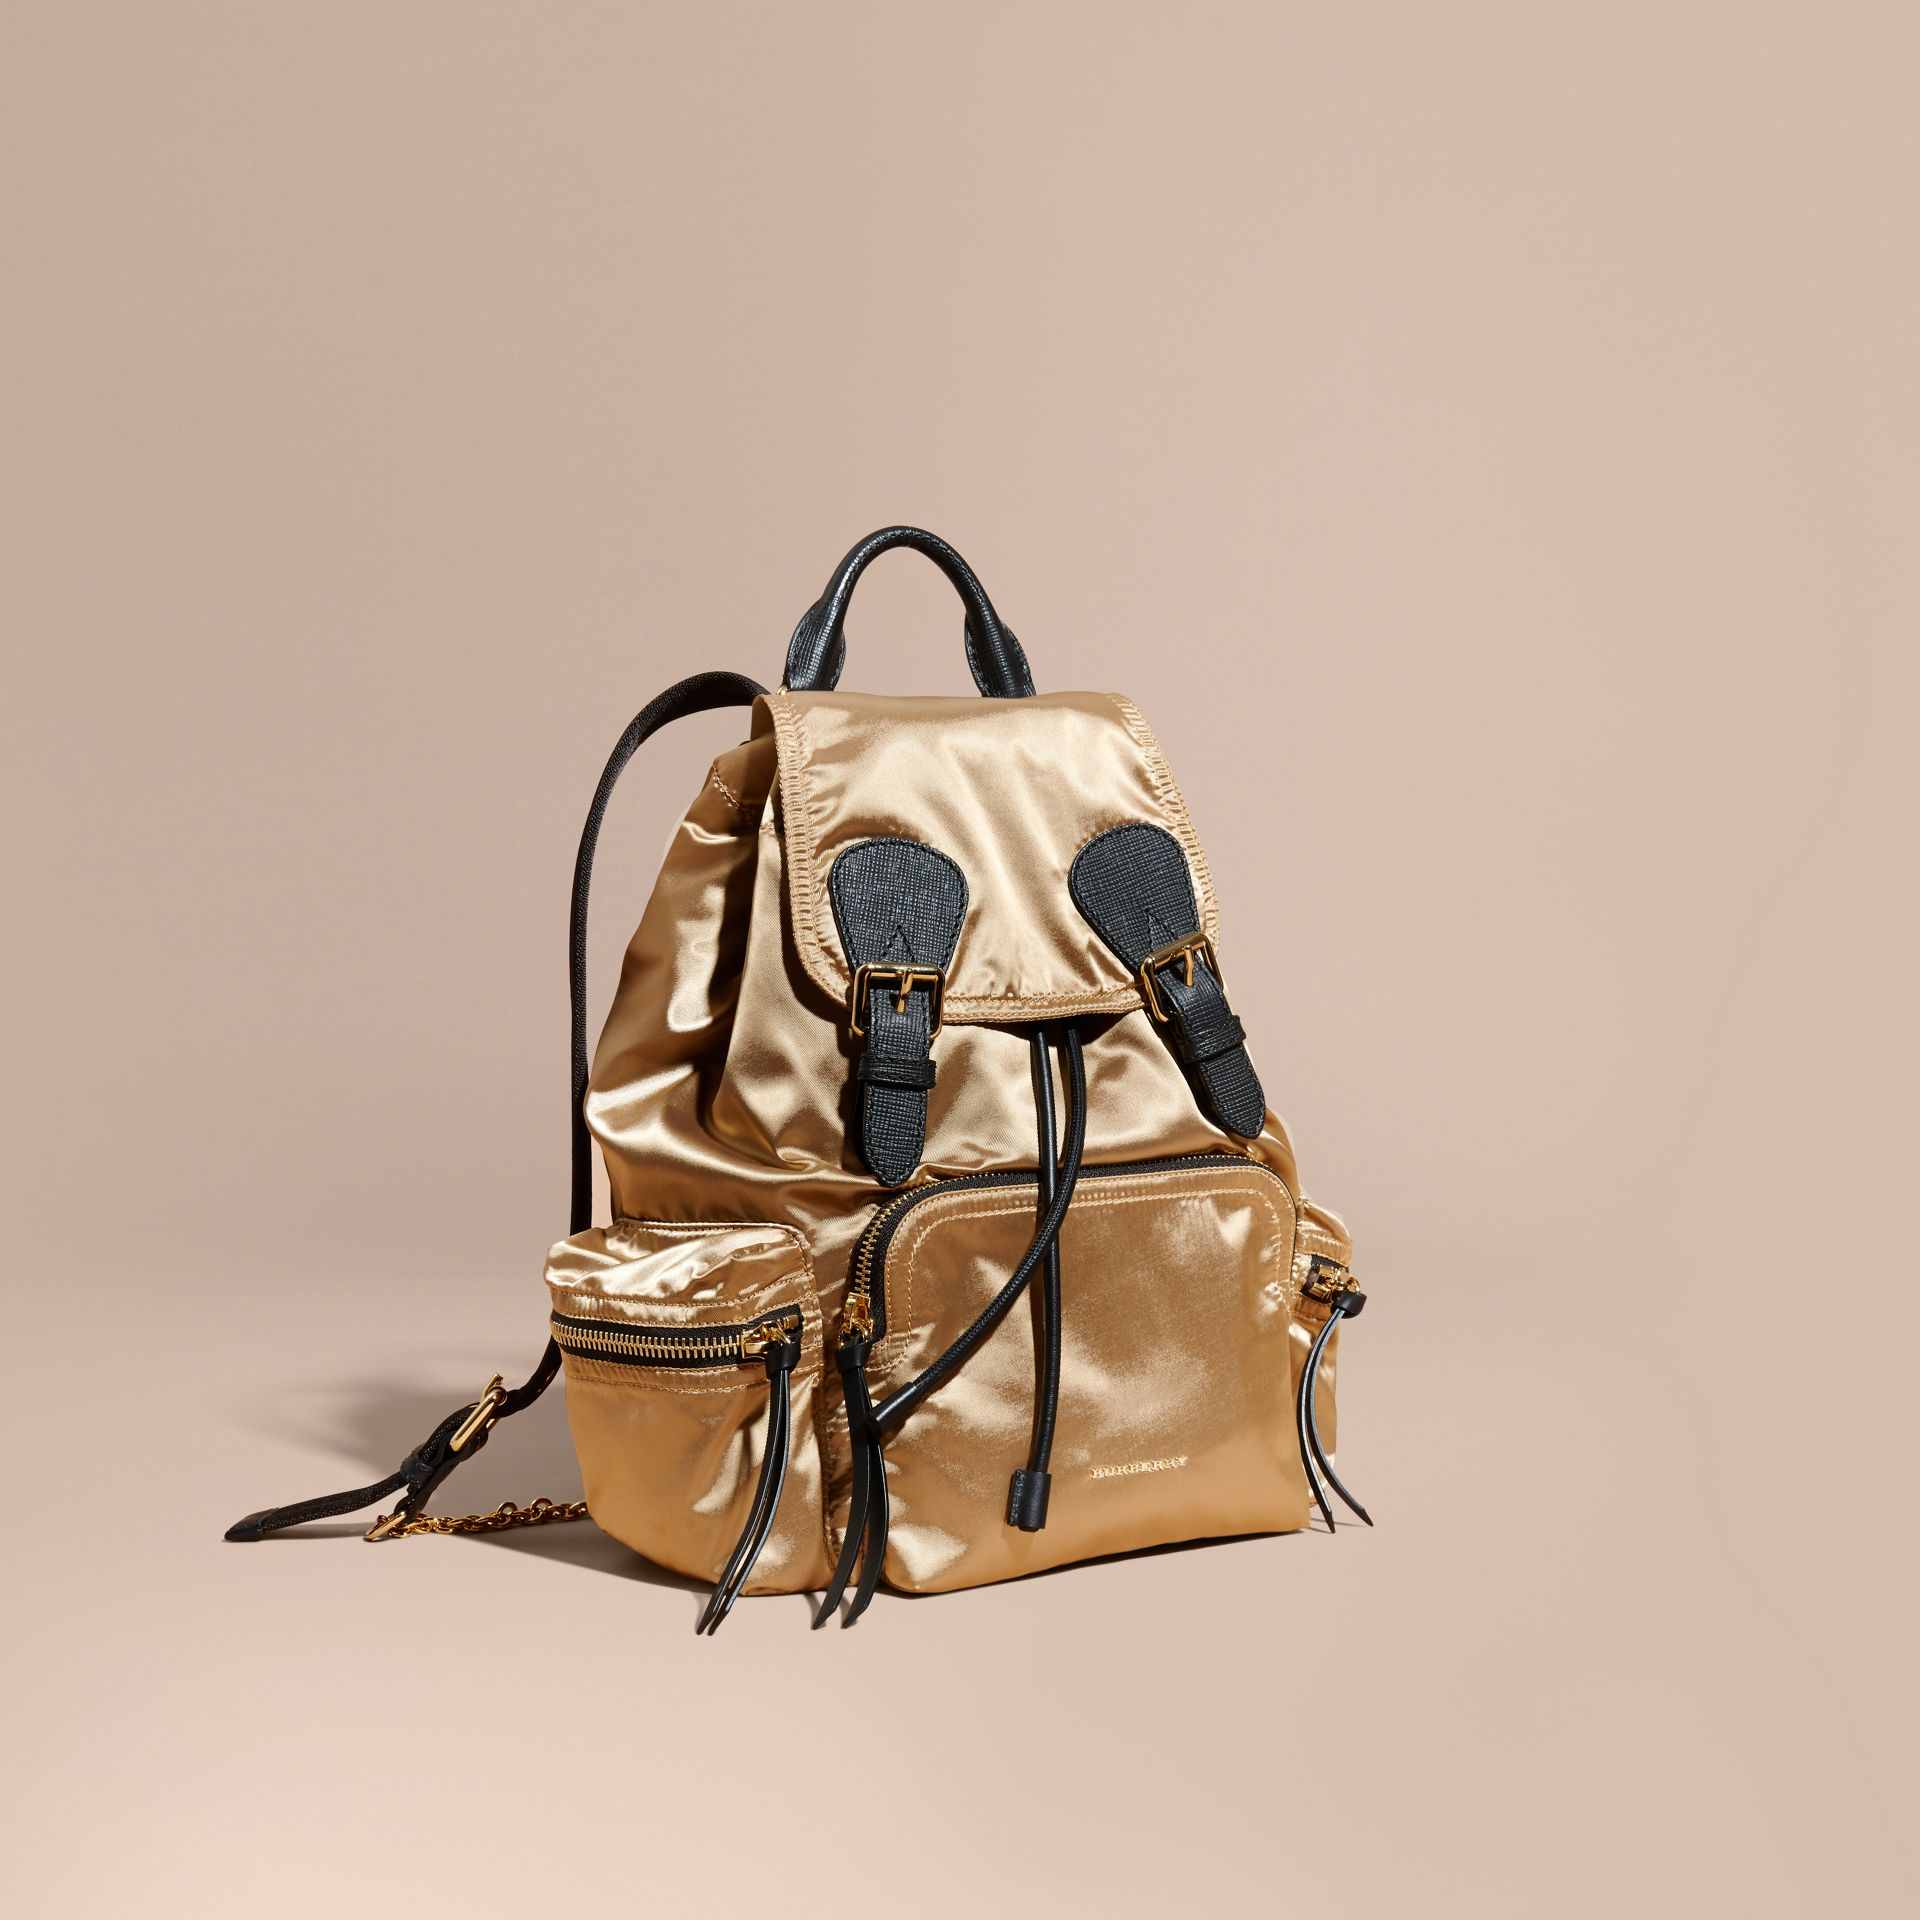 Gold/black The Medium Rucksack in Two-tone Nylon and Leather Gold/black - gallery image 1